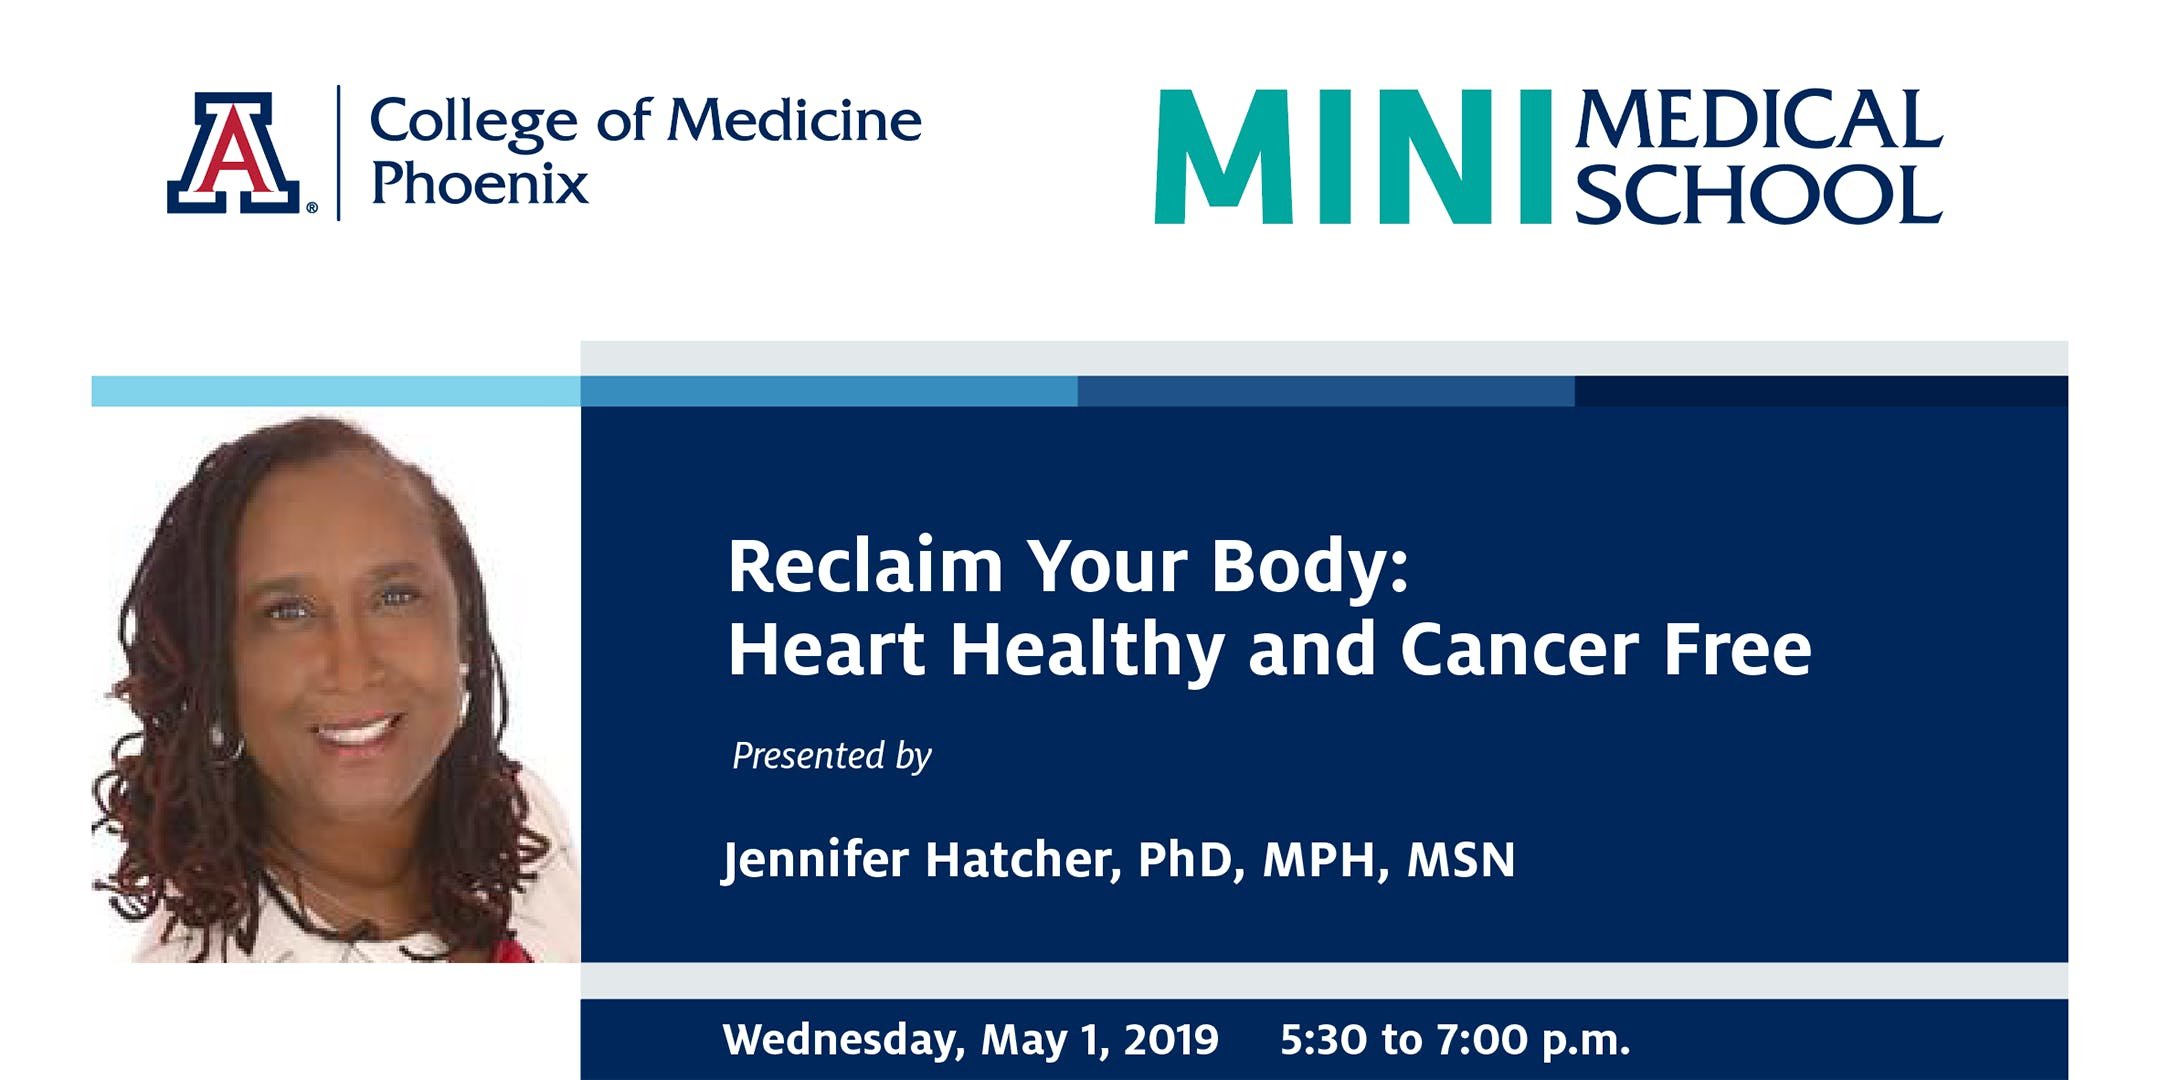 Mini-Medical School: Reclaim Your Body - Heart Healthy and Cancer Free